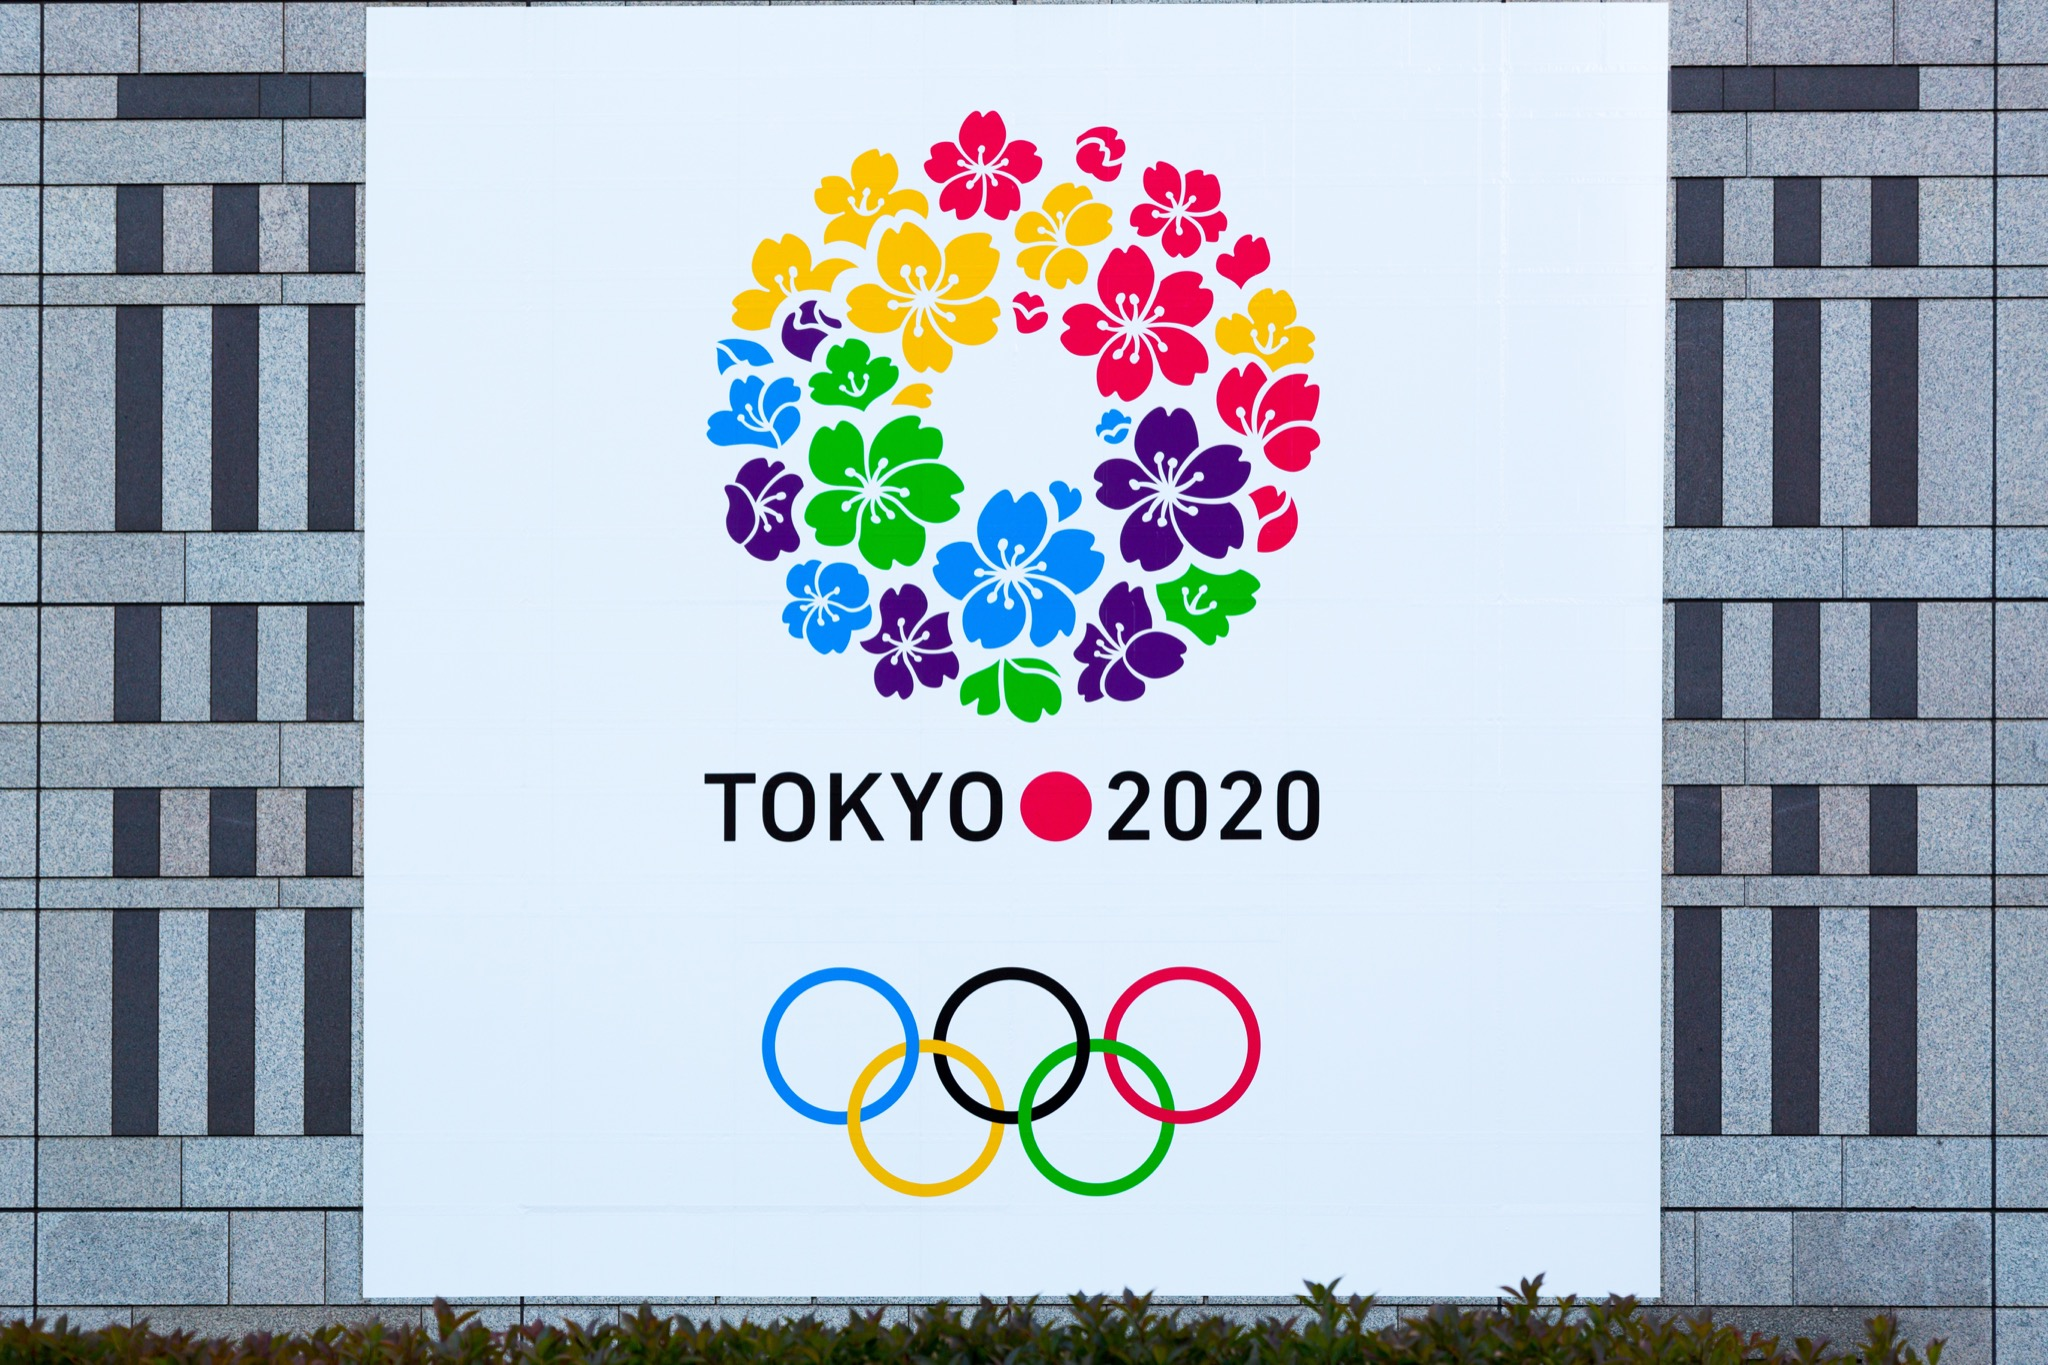 TOKYO, JAPAN - CIRCA AUGUST 2014: Tokyo 2020 Olympics banner on a government building.